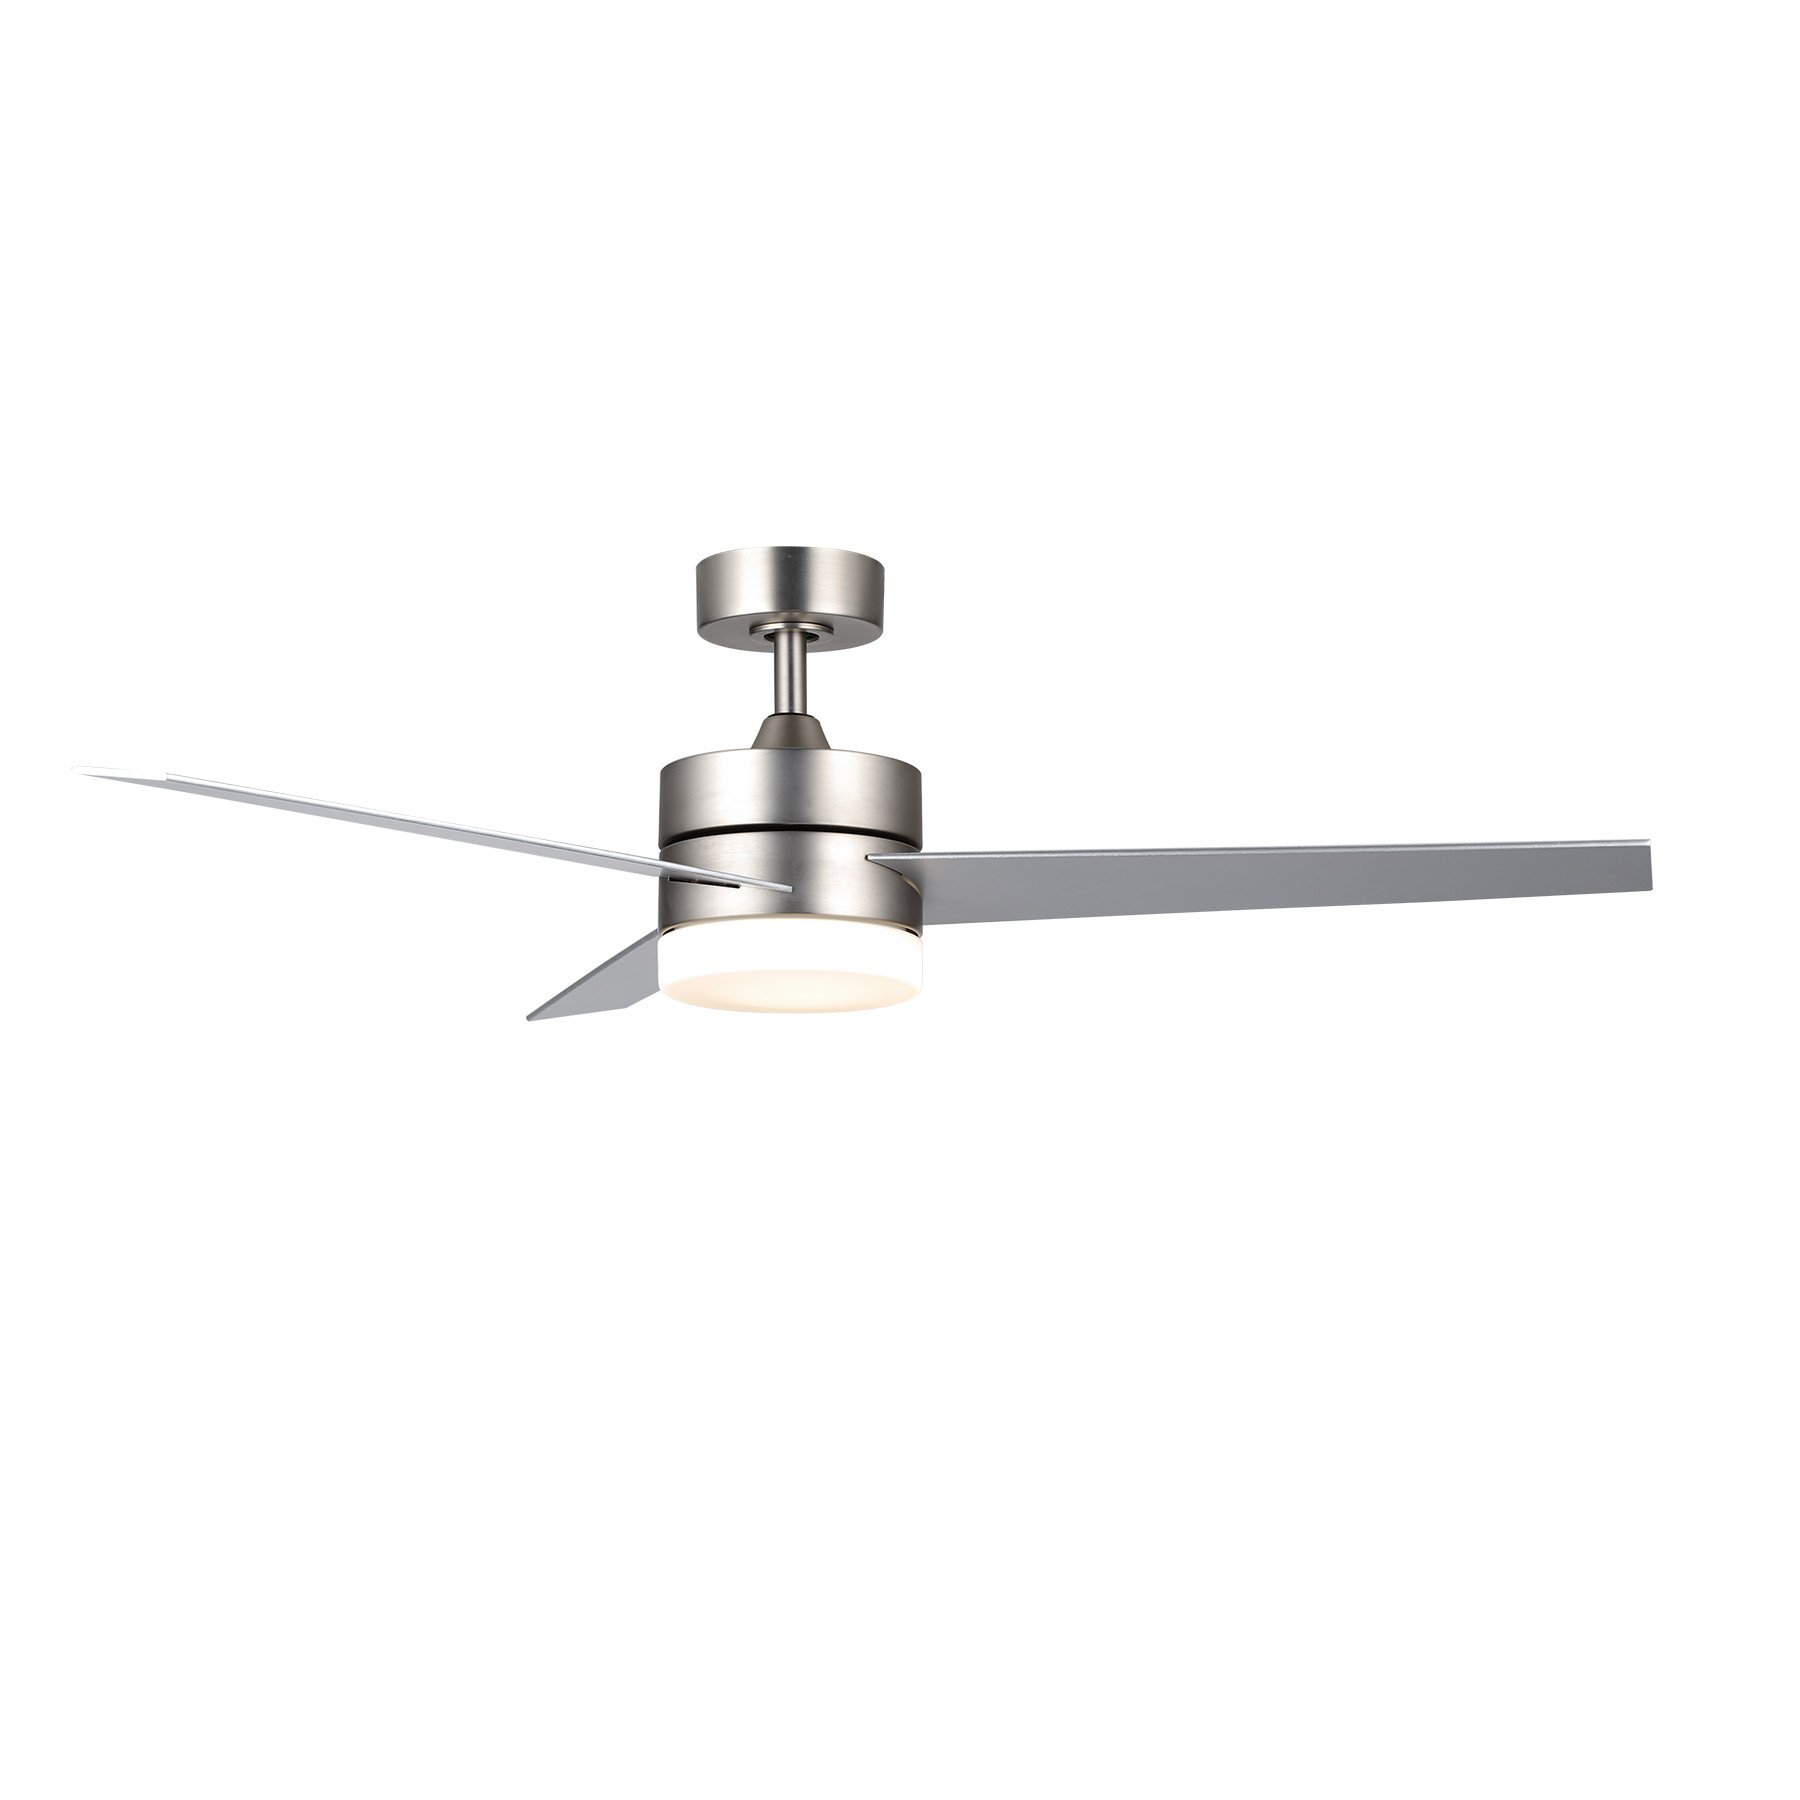 """CO-Z Contemporary 52""""Ceiling Fan Light Brushed Nickel Finish with 3 Silver and Walnut Plywood Blades, Include 18W LED Light & Remote Control, UL Certificate"""